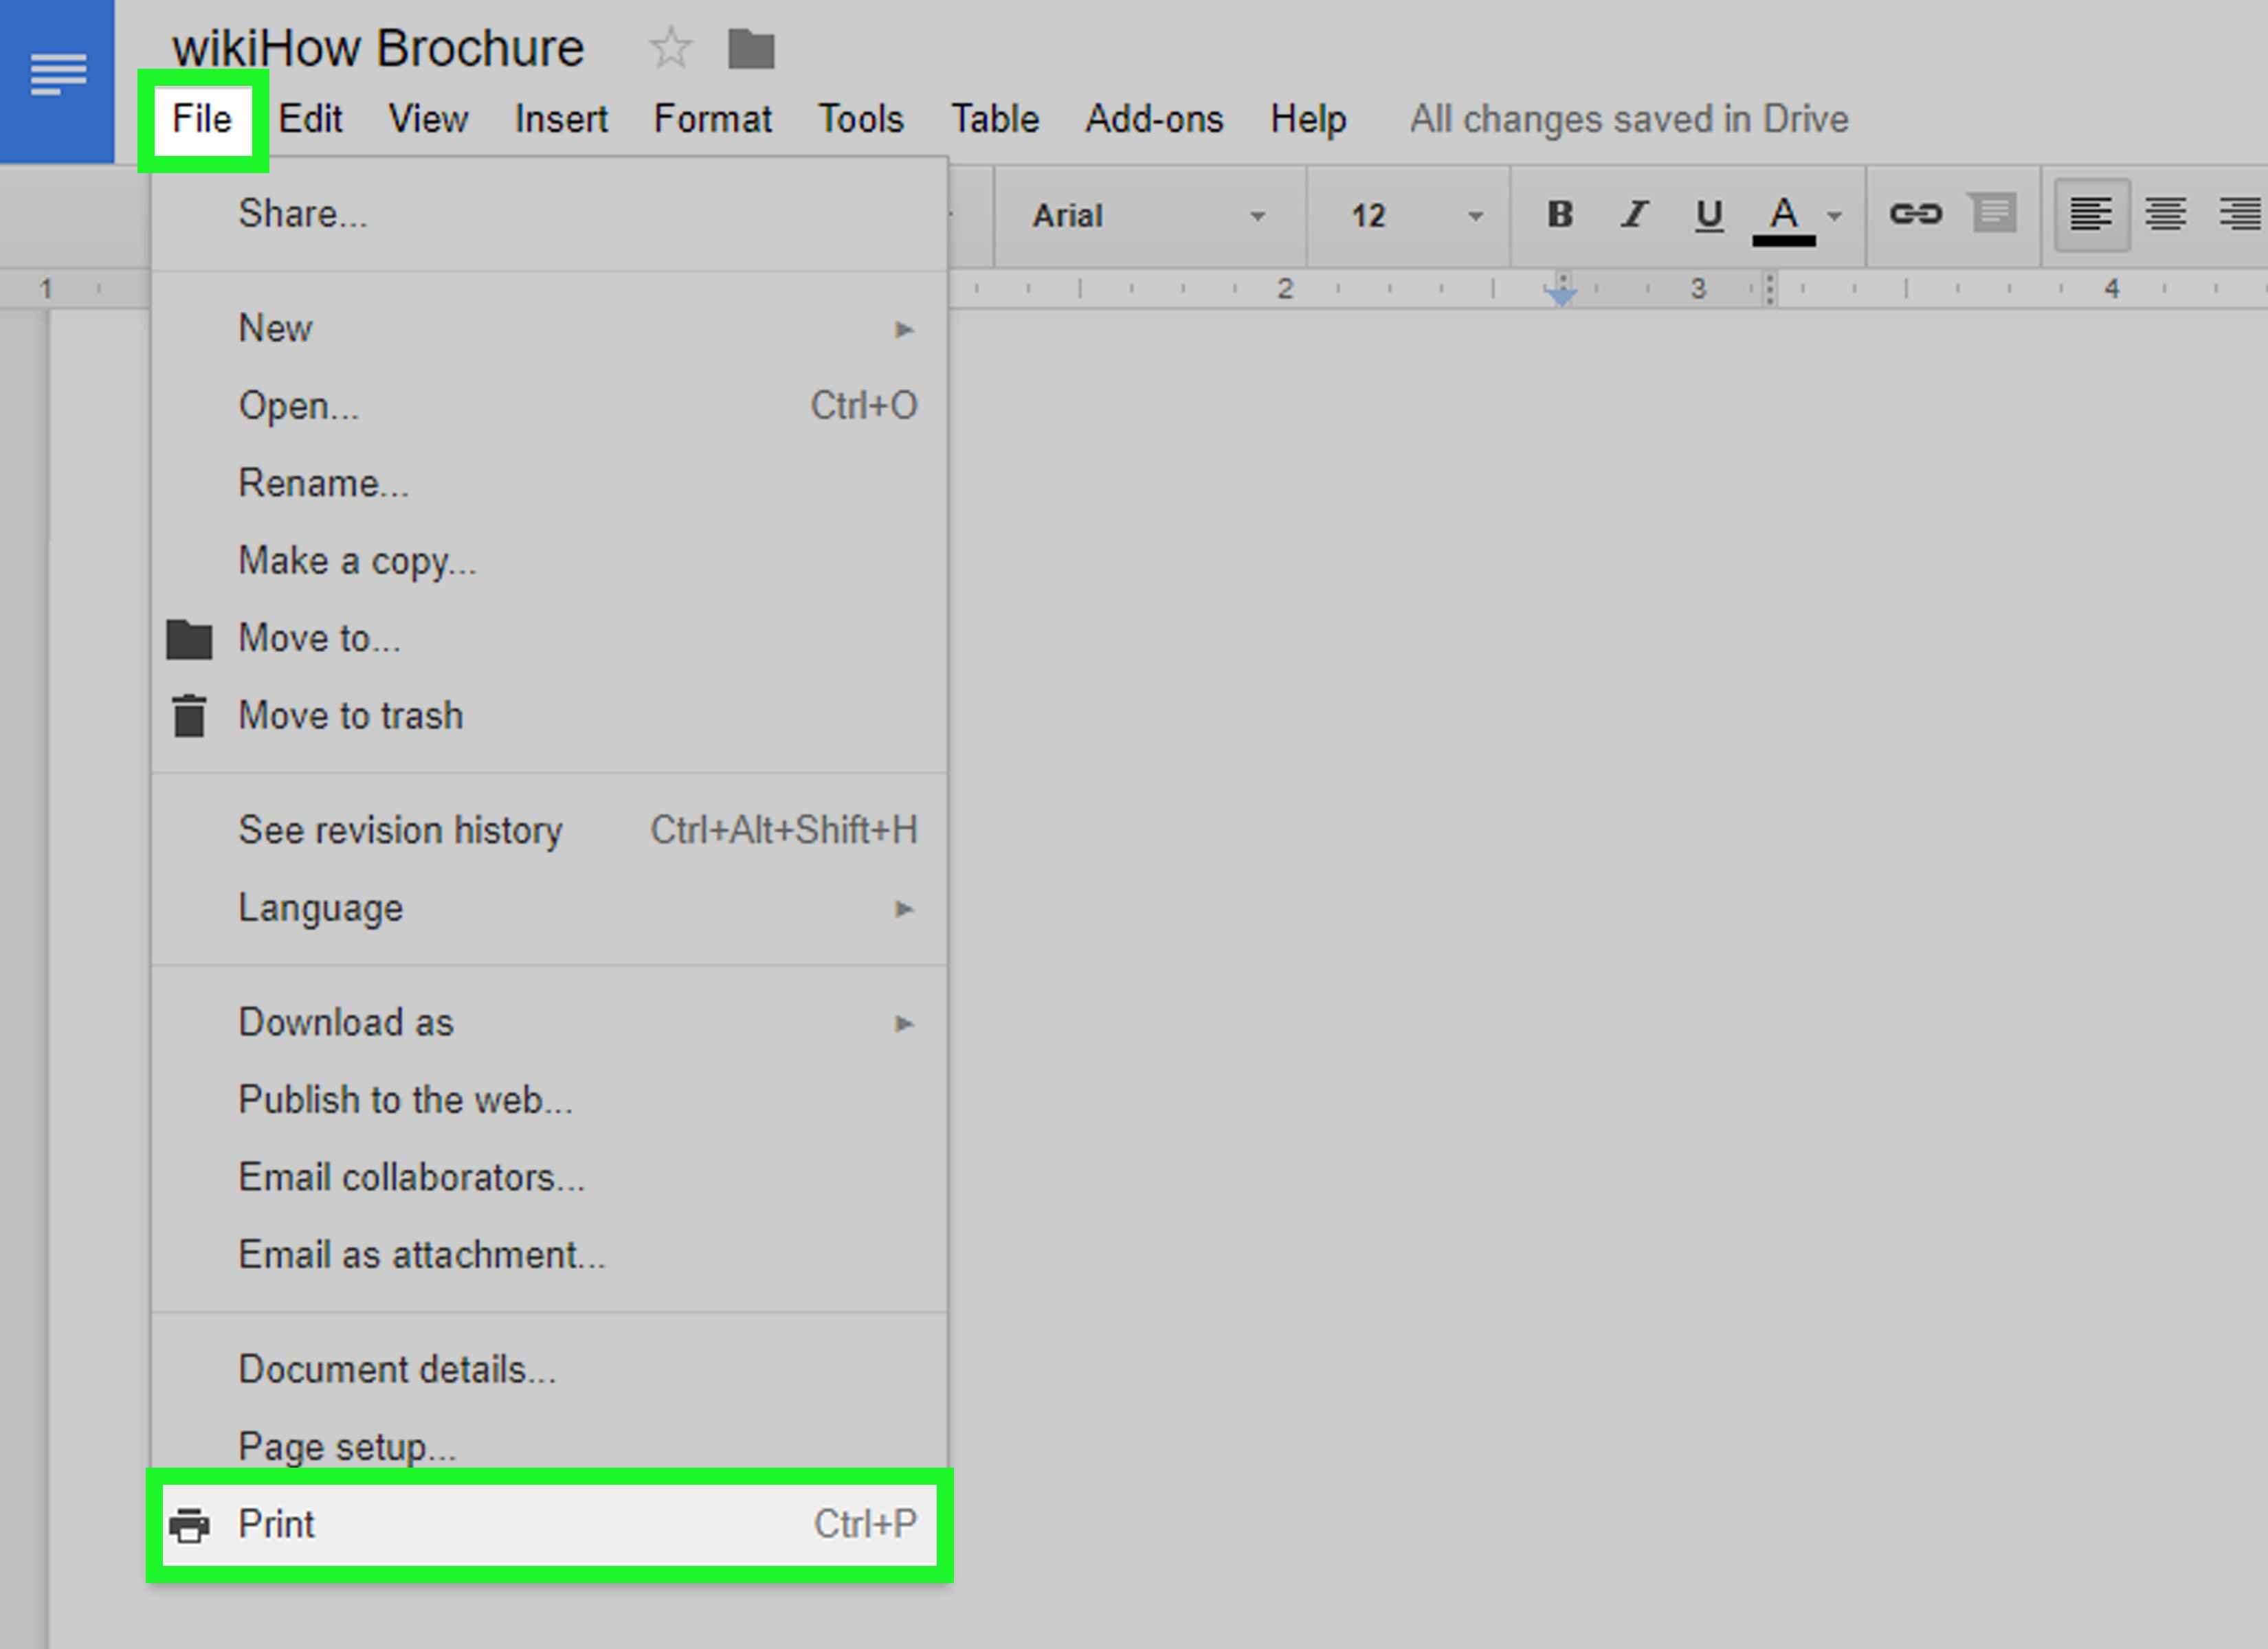 Google Docs Brochure Templates How to Make A Brochure Using Google Docs with